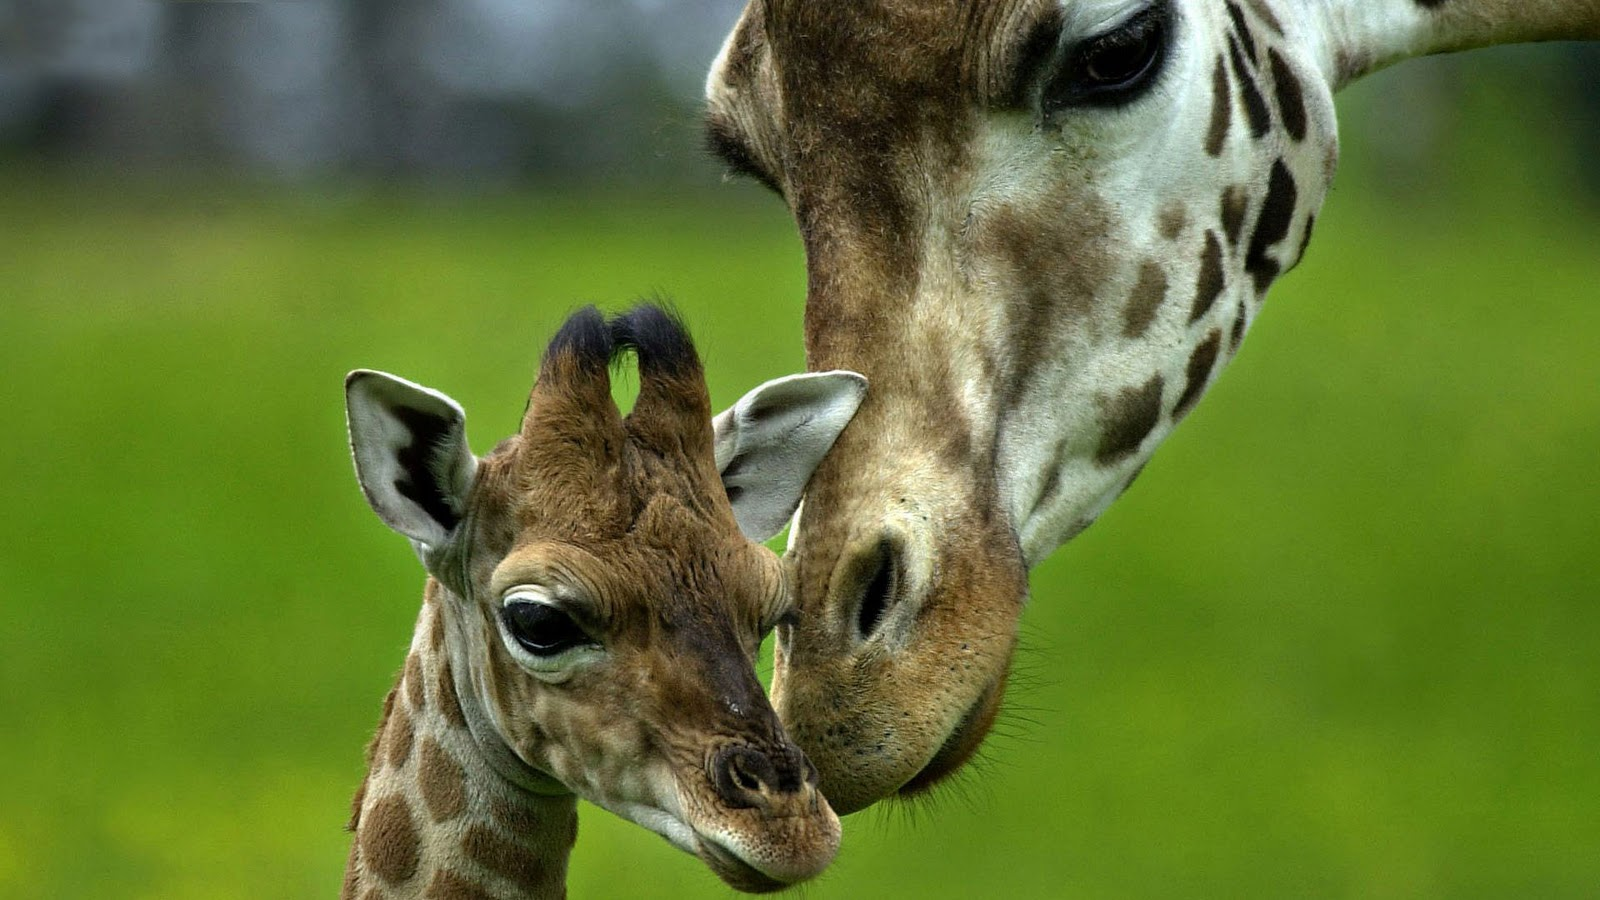 giraffe wallpapers hd pictures - photo #16